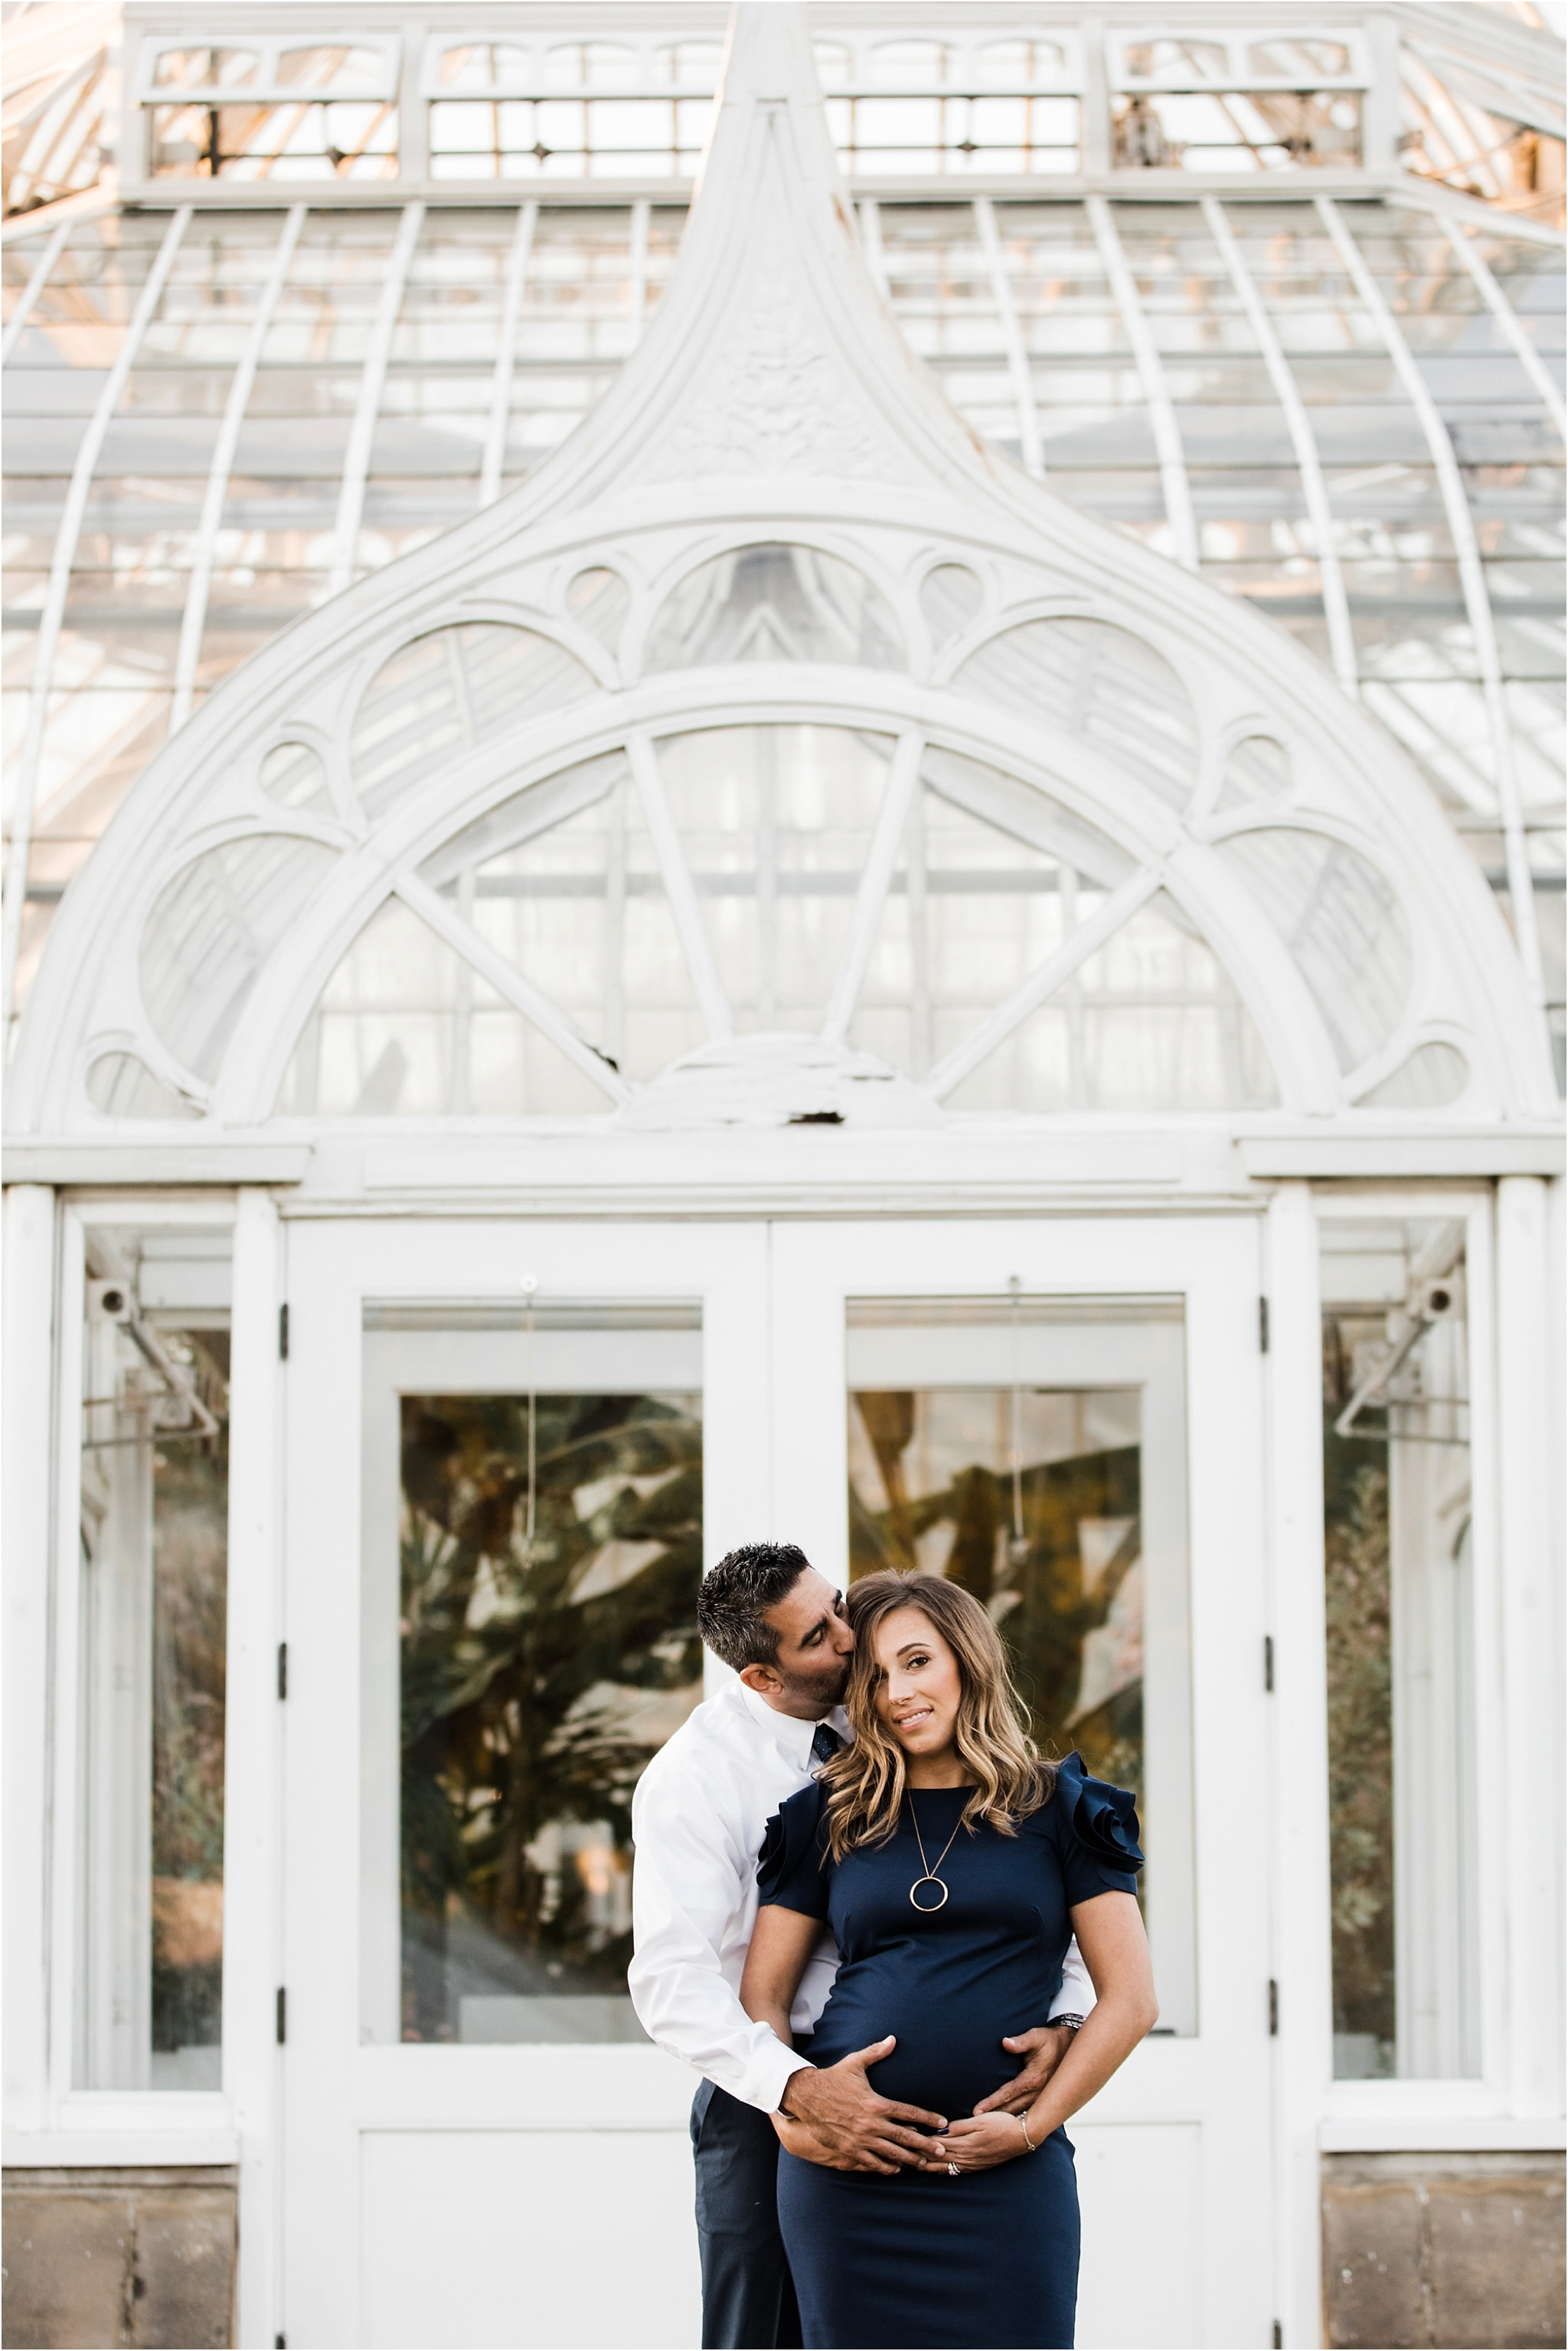 Formal Maternity wardrobe at Phipps Conservatory Pittsburgh